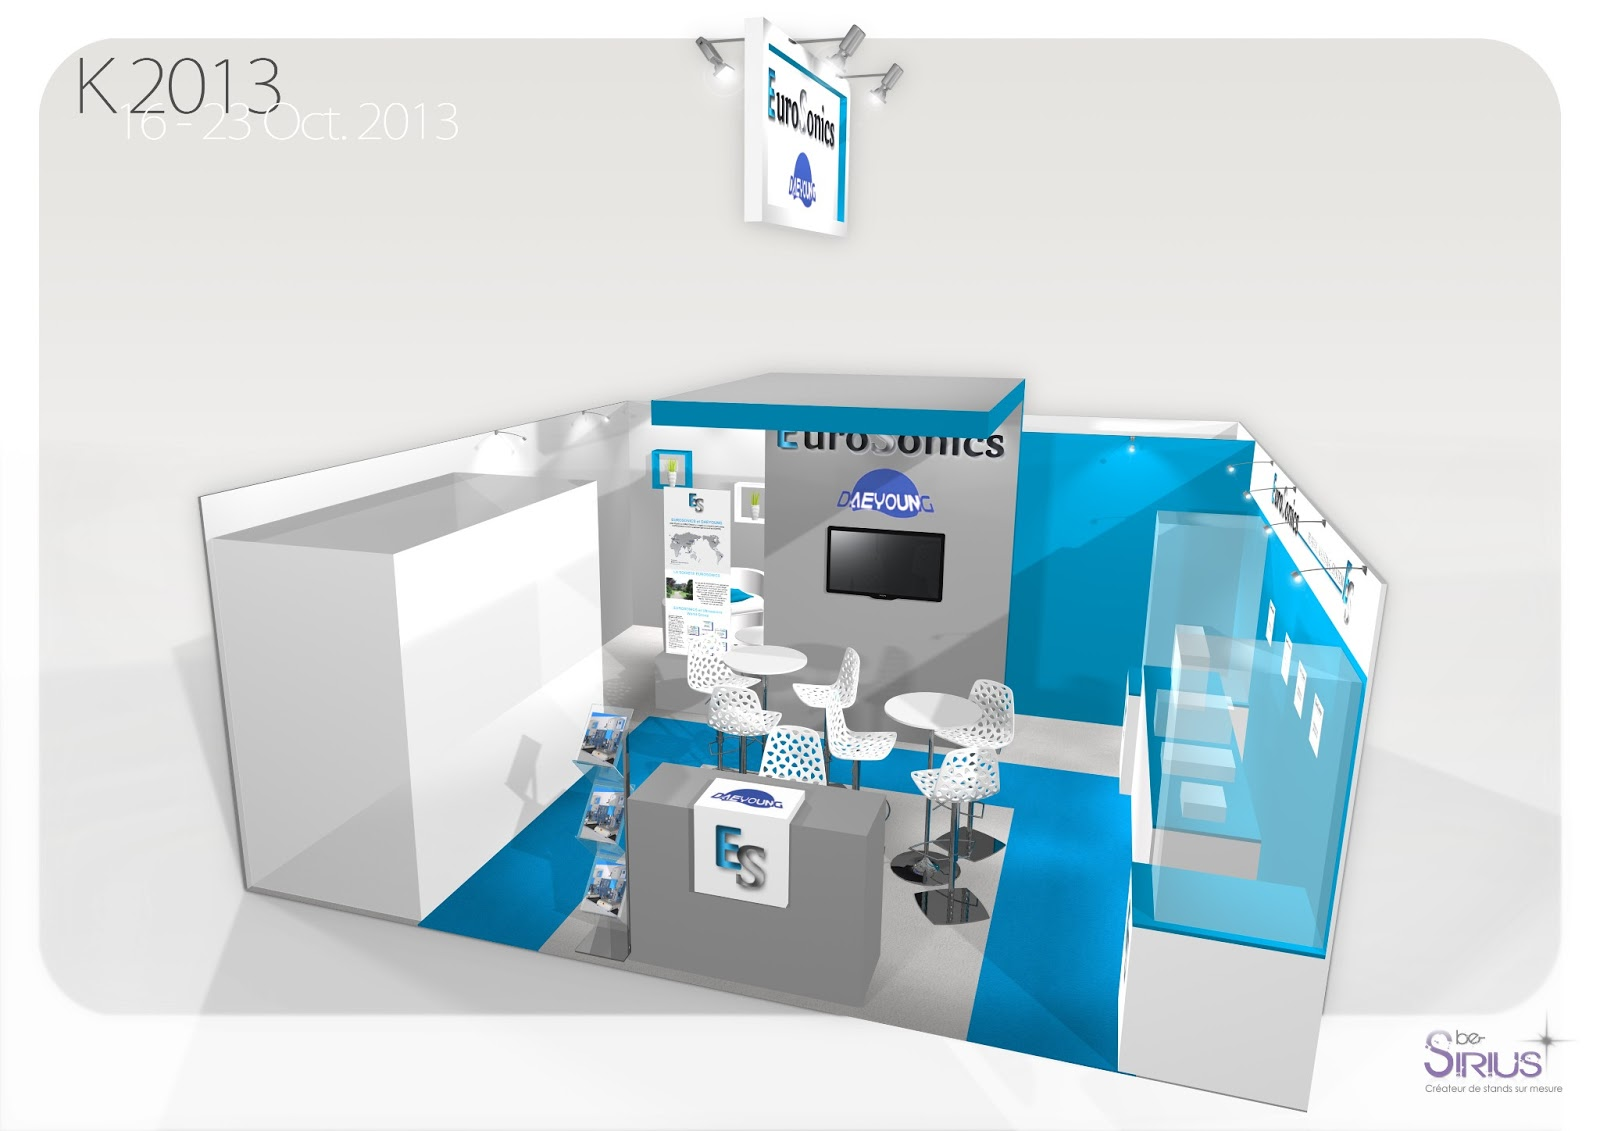 Be-Sirius a proposé sa version de stand en location, l'Econome, stand clé en main 100% personnalisable, a EUROSONICS SUR K2013.